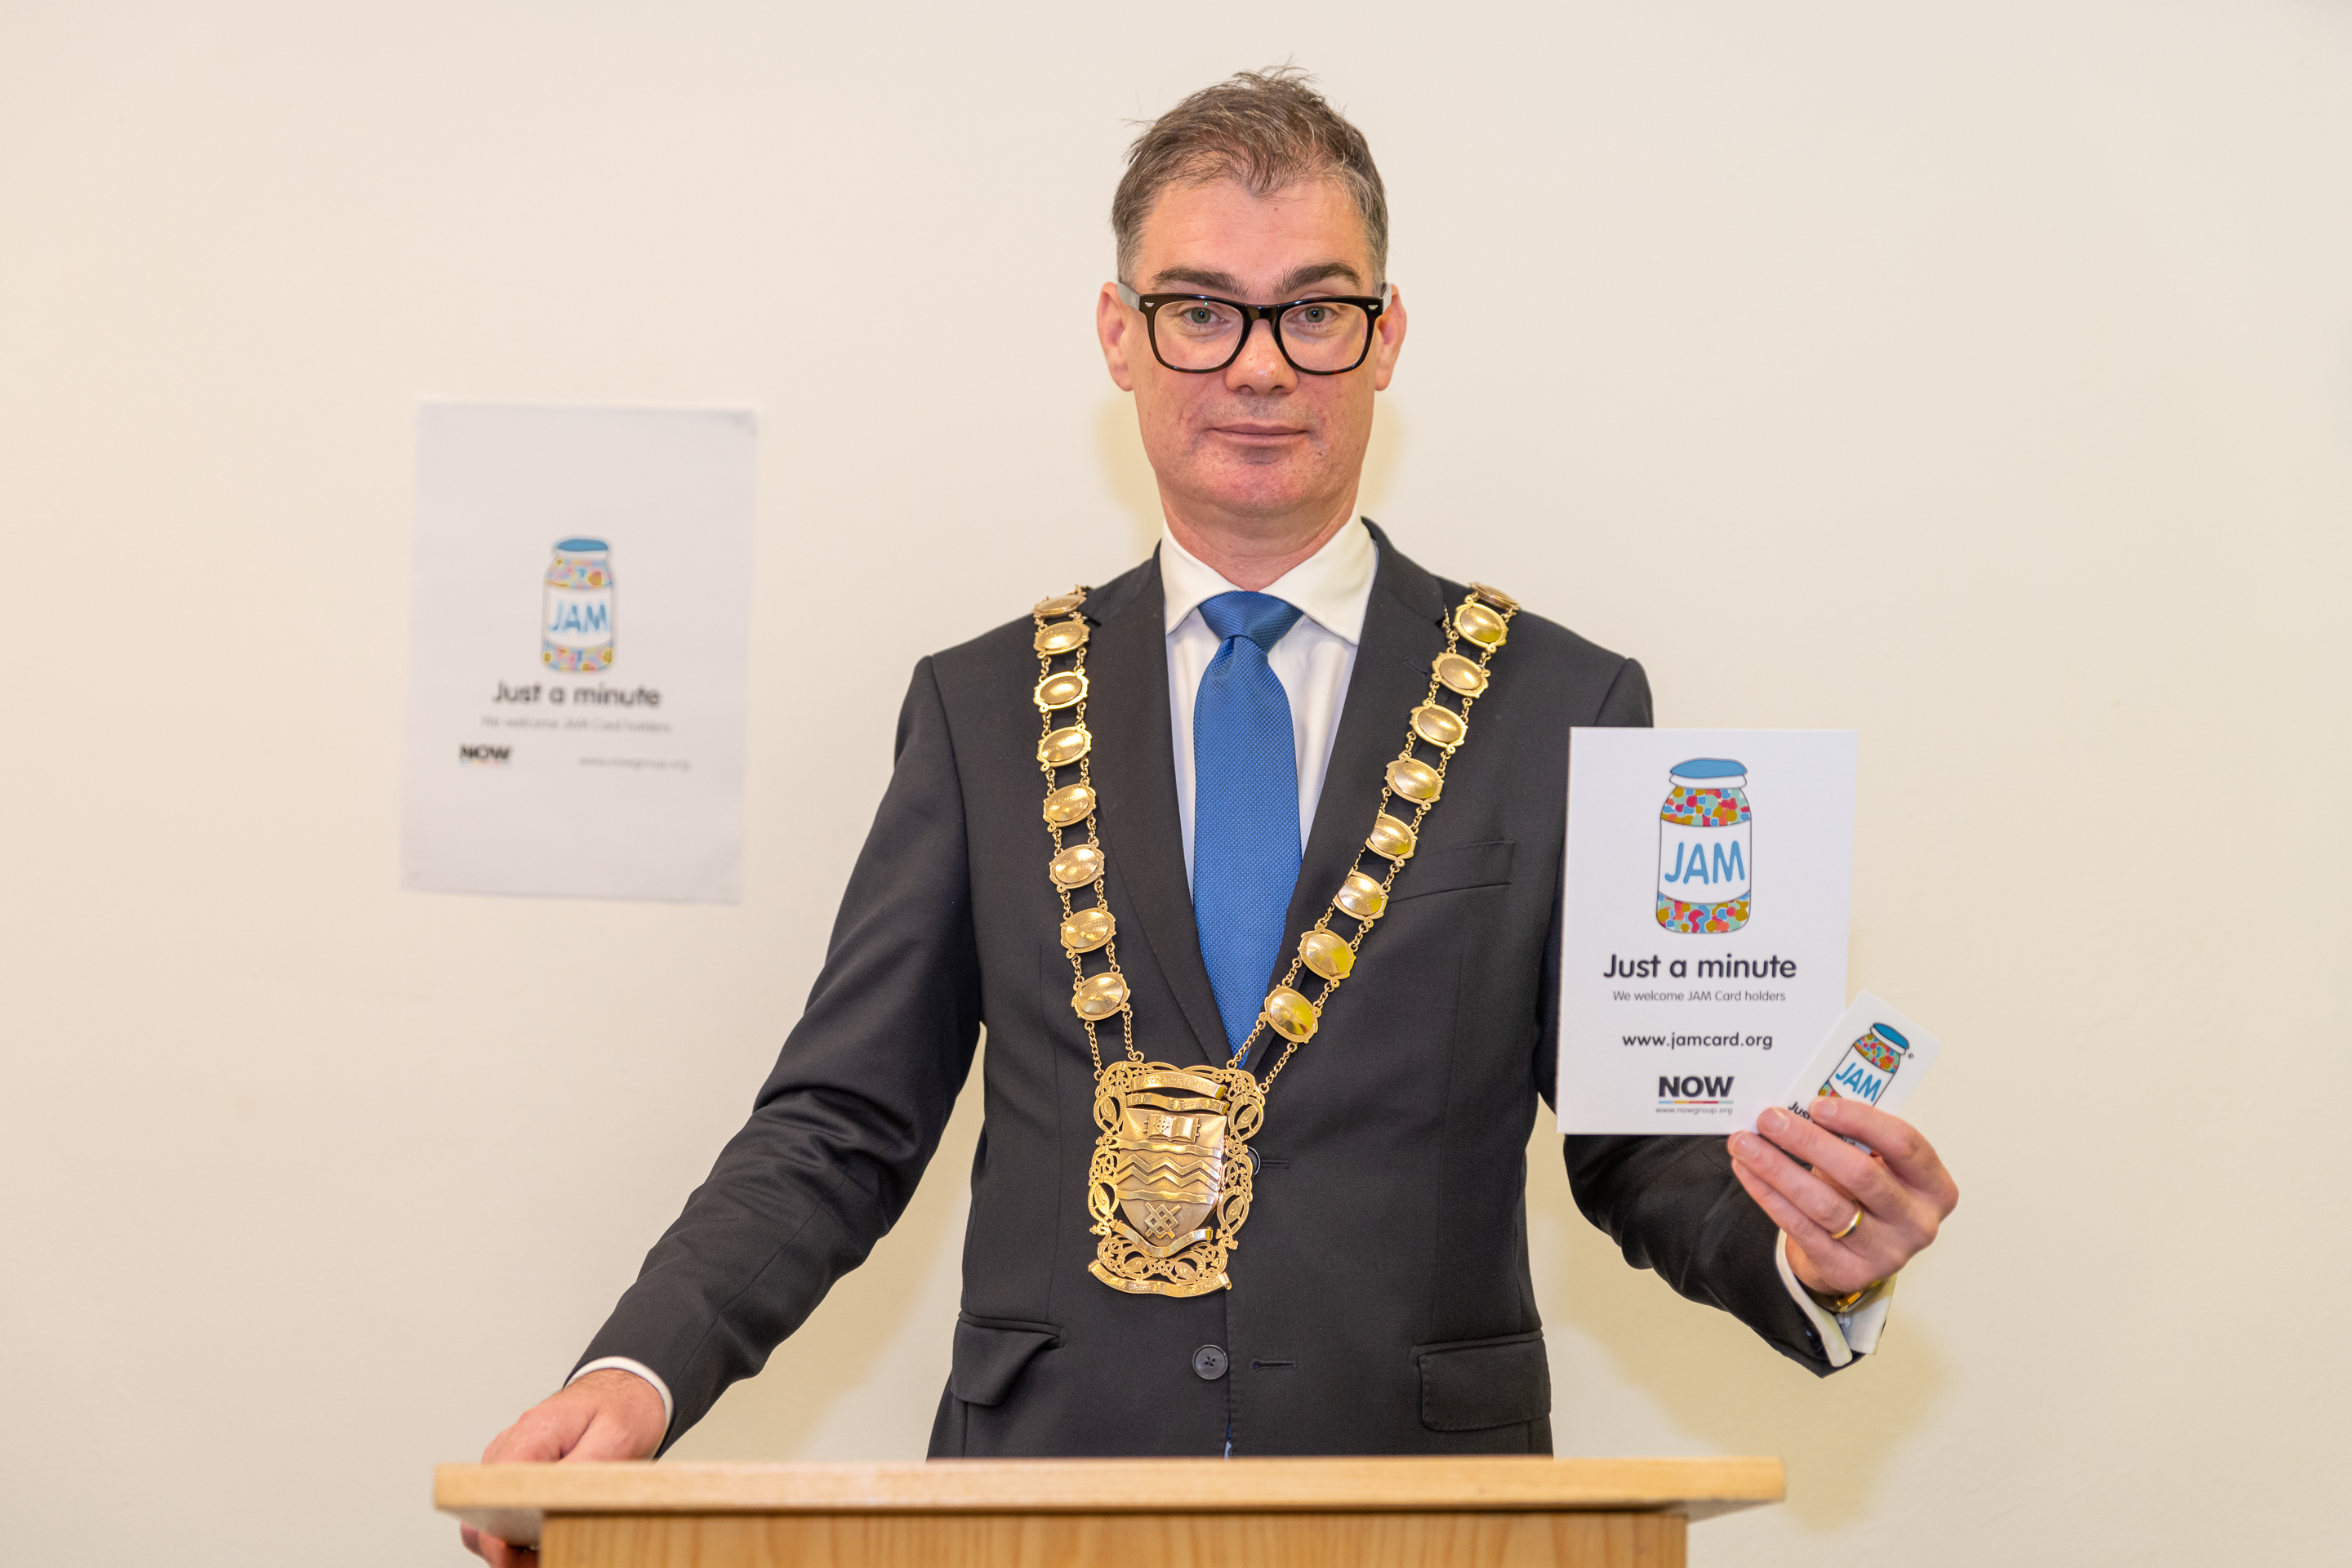 South Dublin County Council celebrates being the first JAM Card Friendly local authority in Ireland